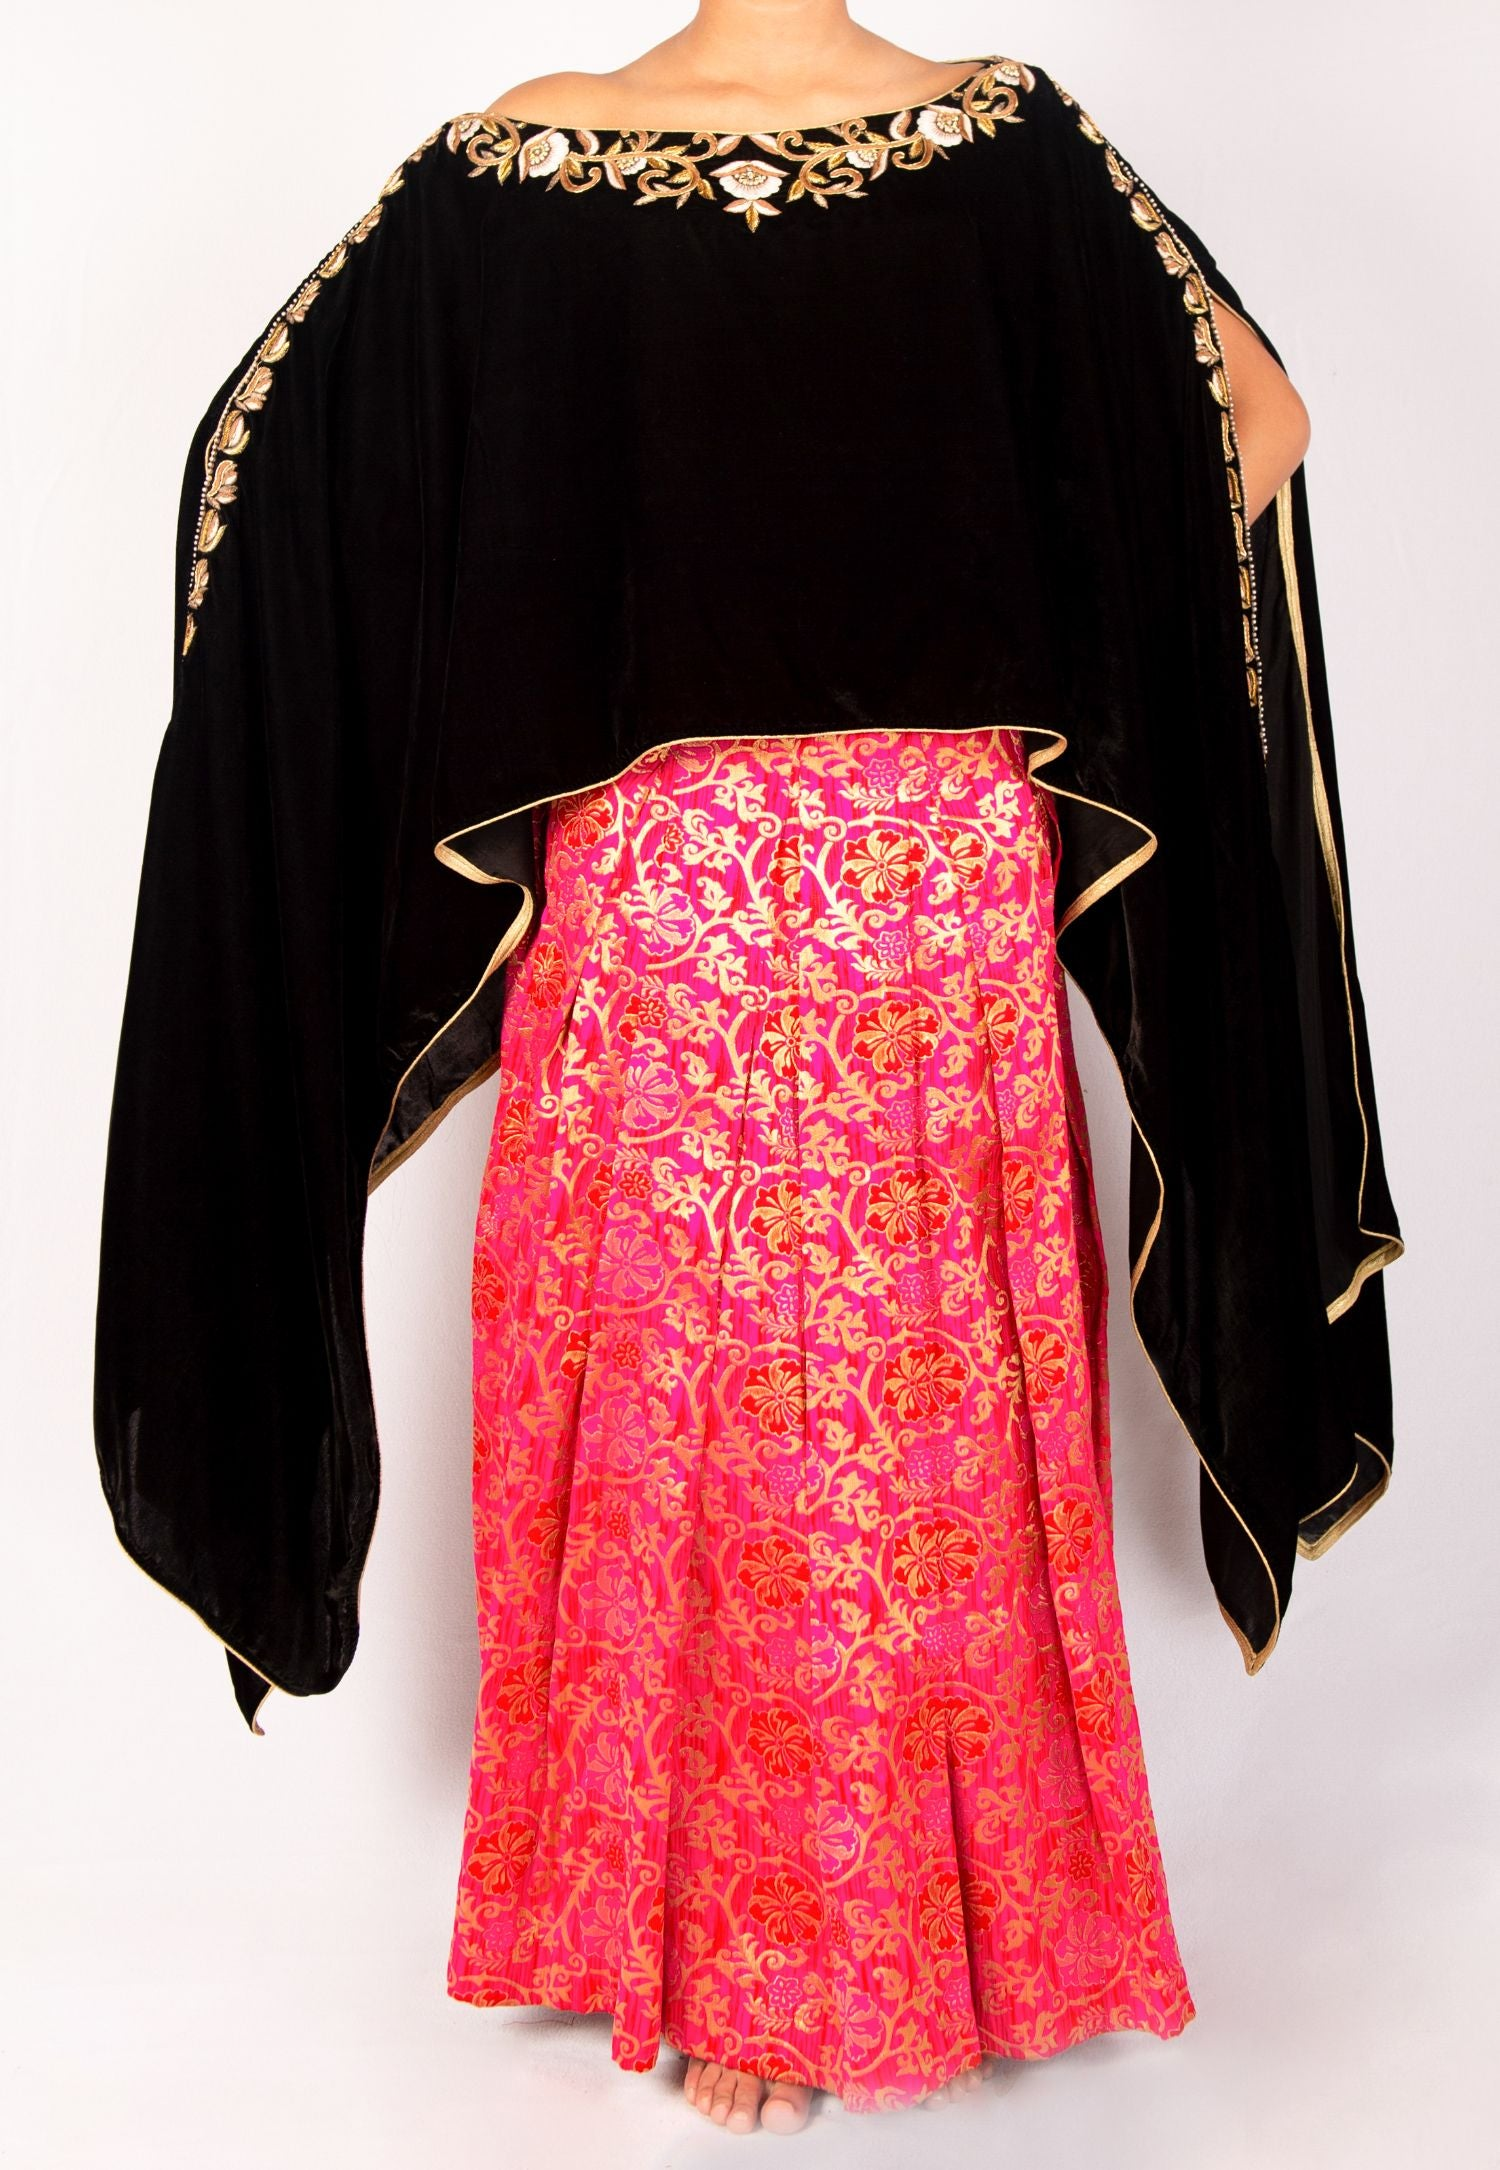 BROCADE PINK PLEATED SKIRT WITH BLACK VELVET CAPE TOP